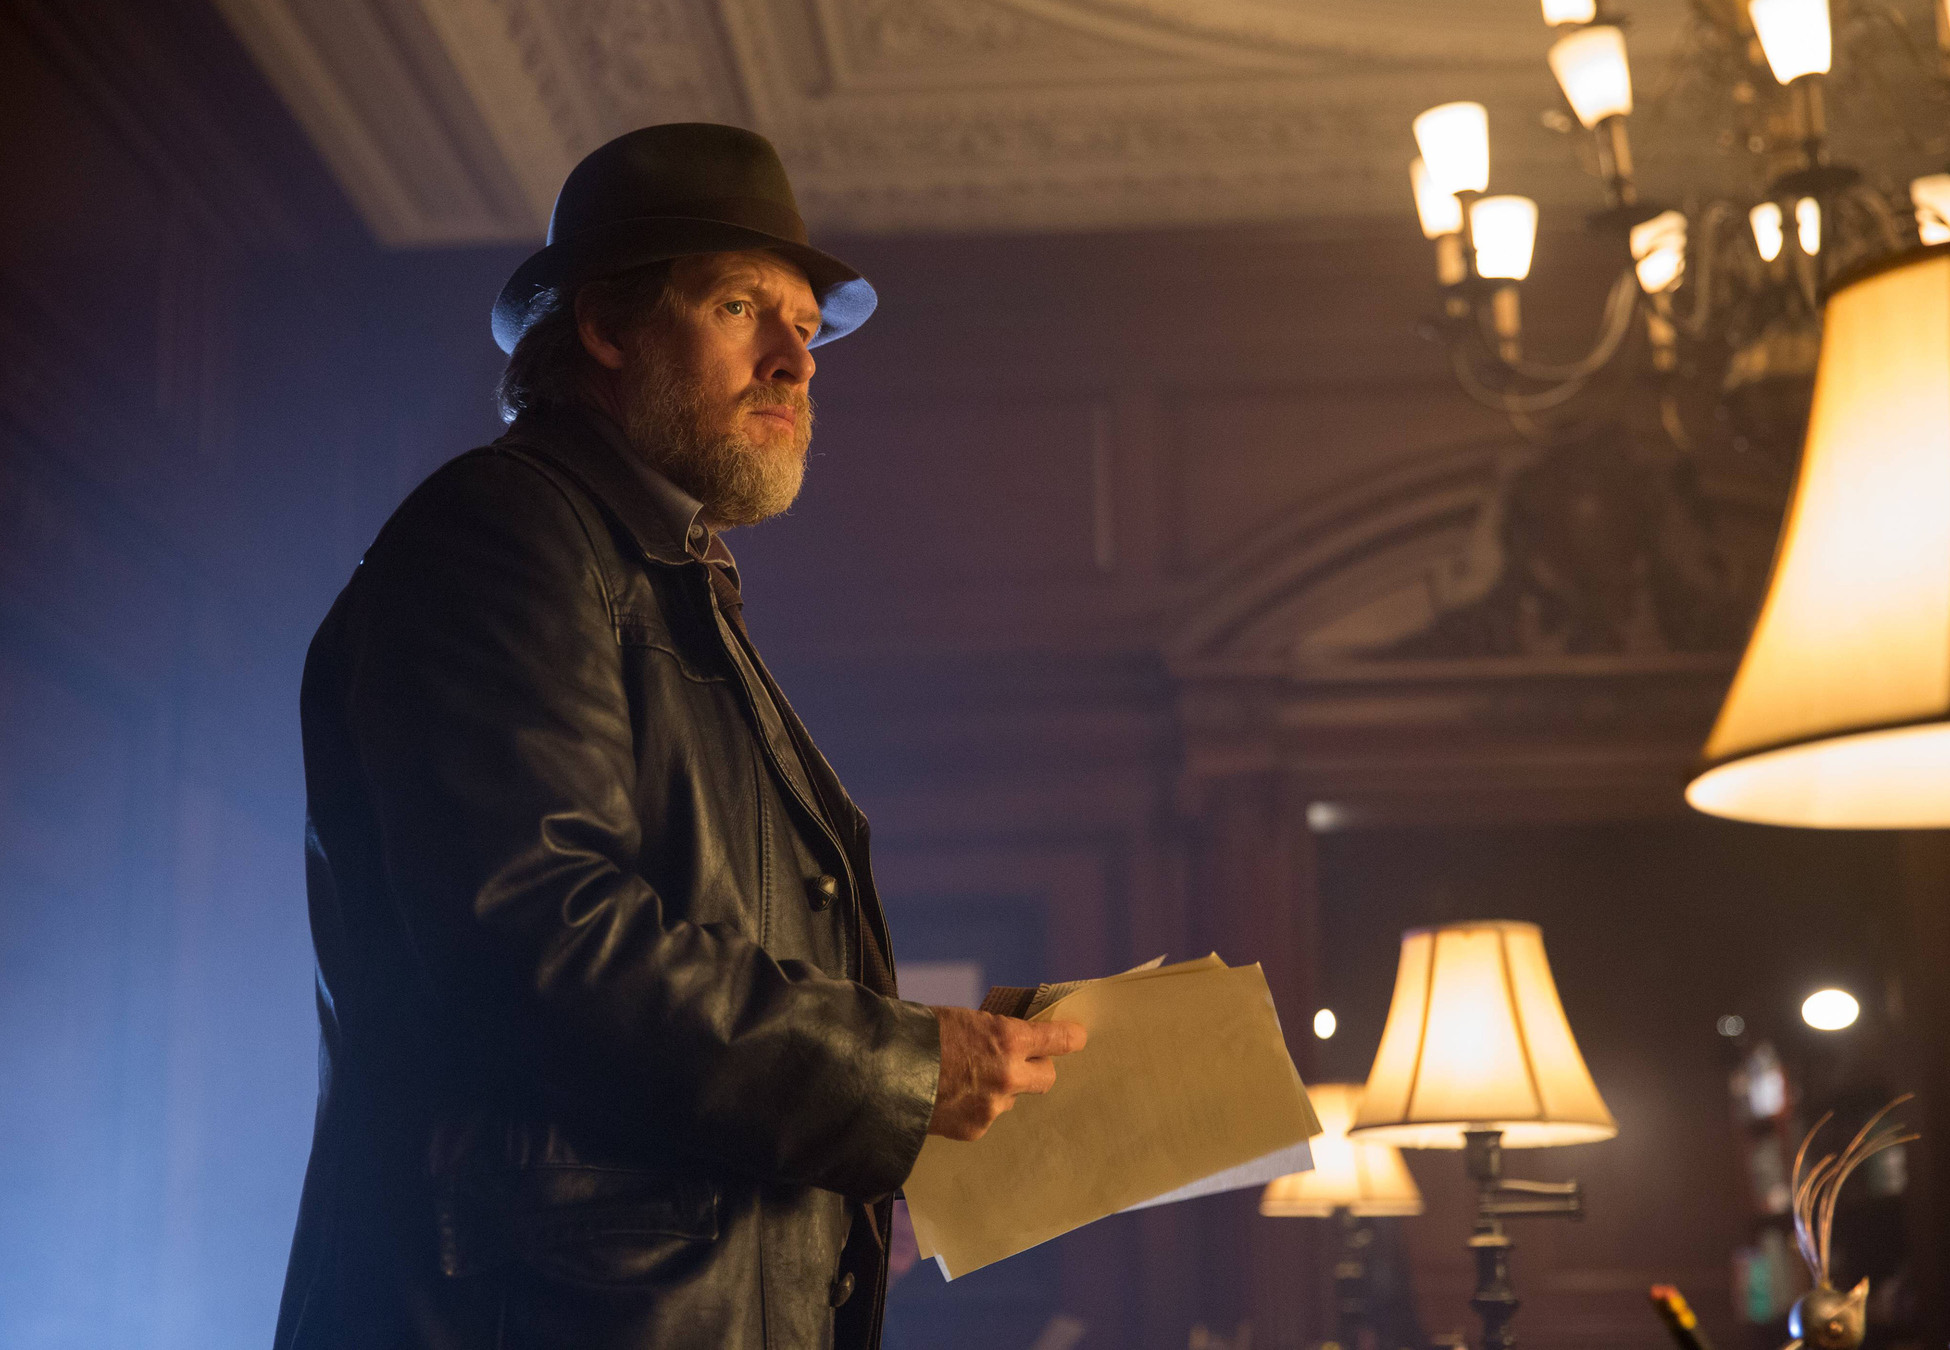 """GOTHAM: Detective Harvey Bullock (Donal Logue) tracks a suspect in the """"Arkham"""" episode of GOTHAM airing Monday, Oct. 13 (8:00-9:00 PM ET/PT) on FOX. ©2014 Fox Broadcasting Co. Cr: Jessica Miglio/FOX"""